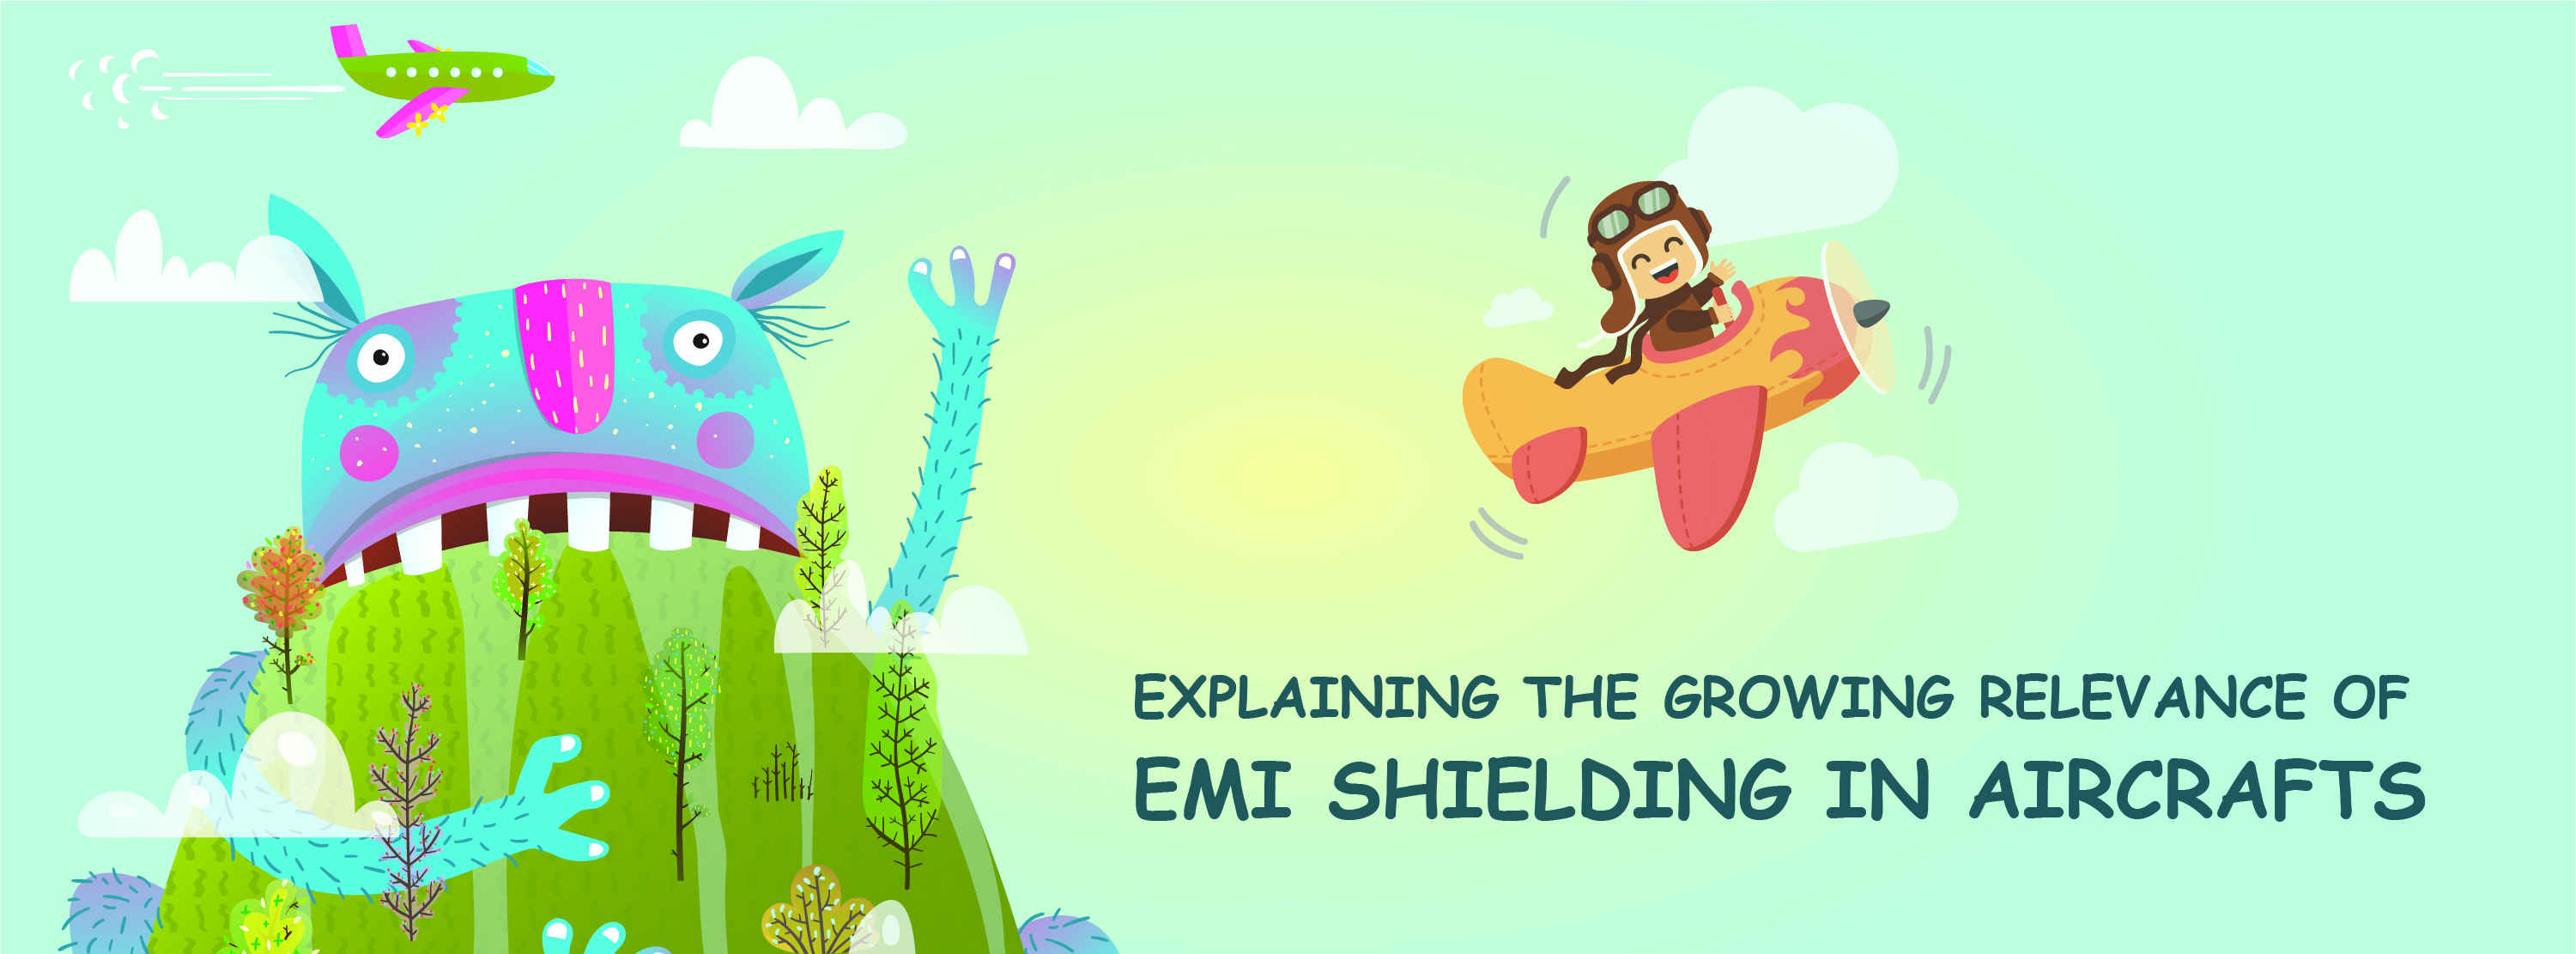 EMI Shielding in Aircrafts